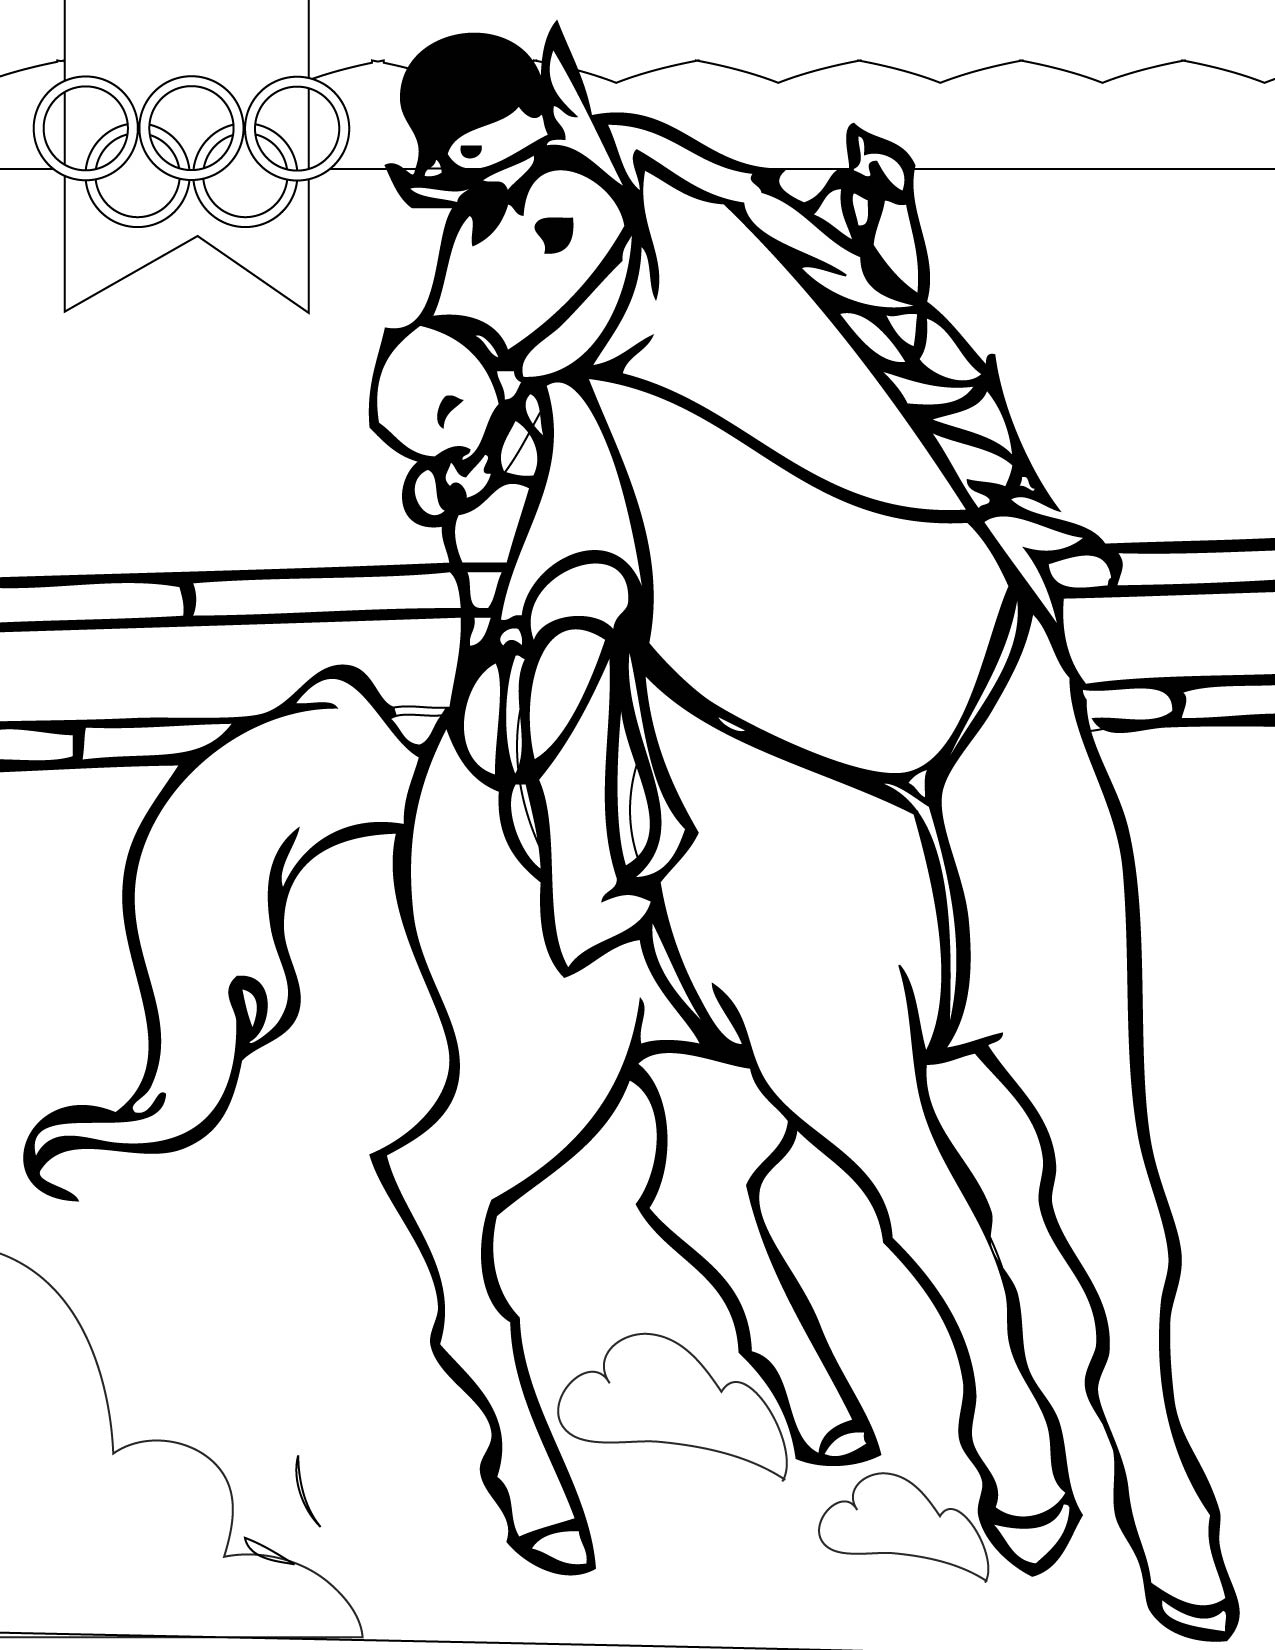 equestrian coloring pages for kids,printable,coloring pages